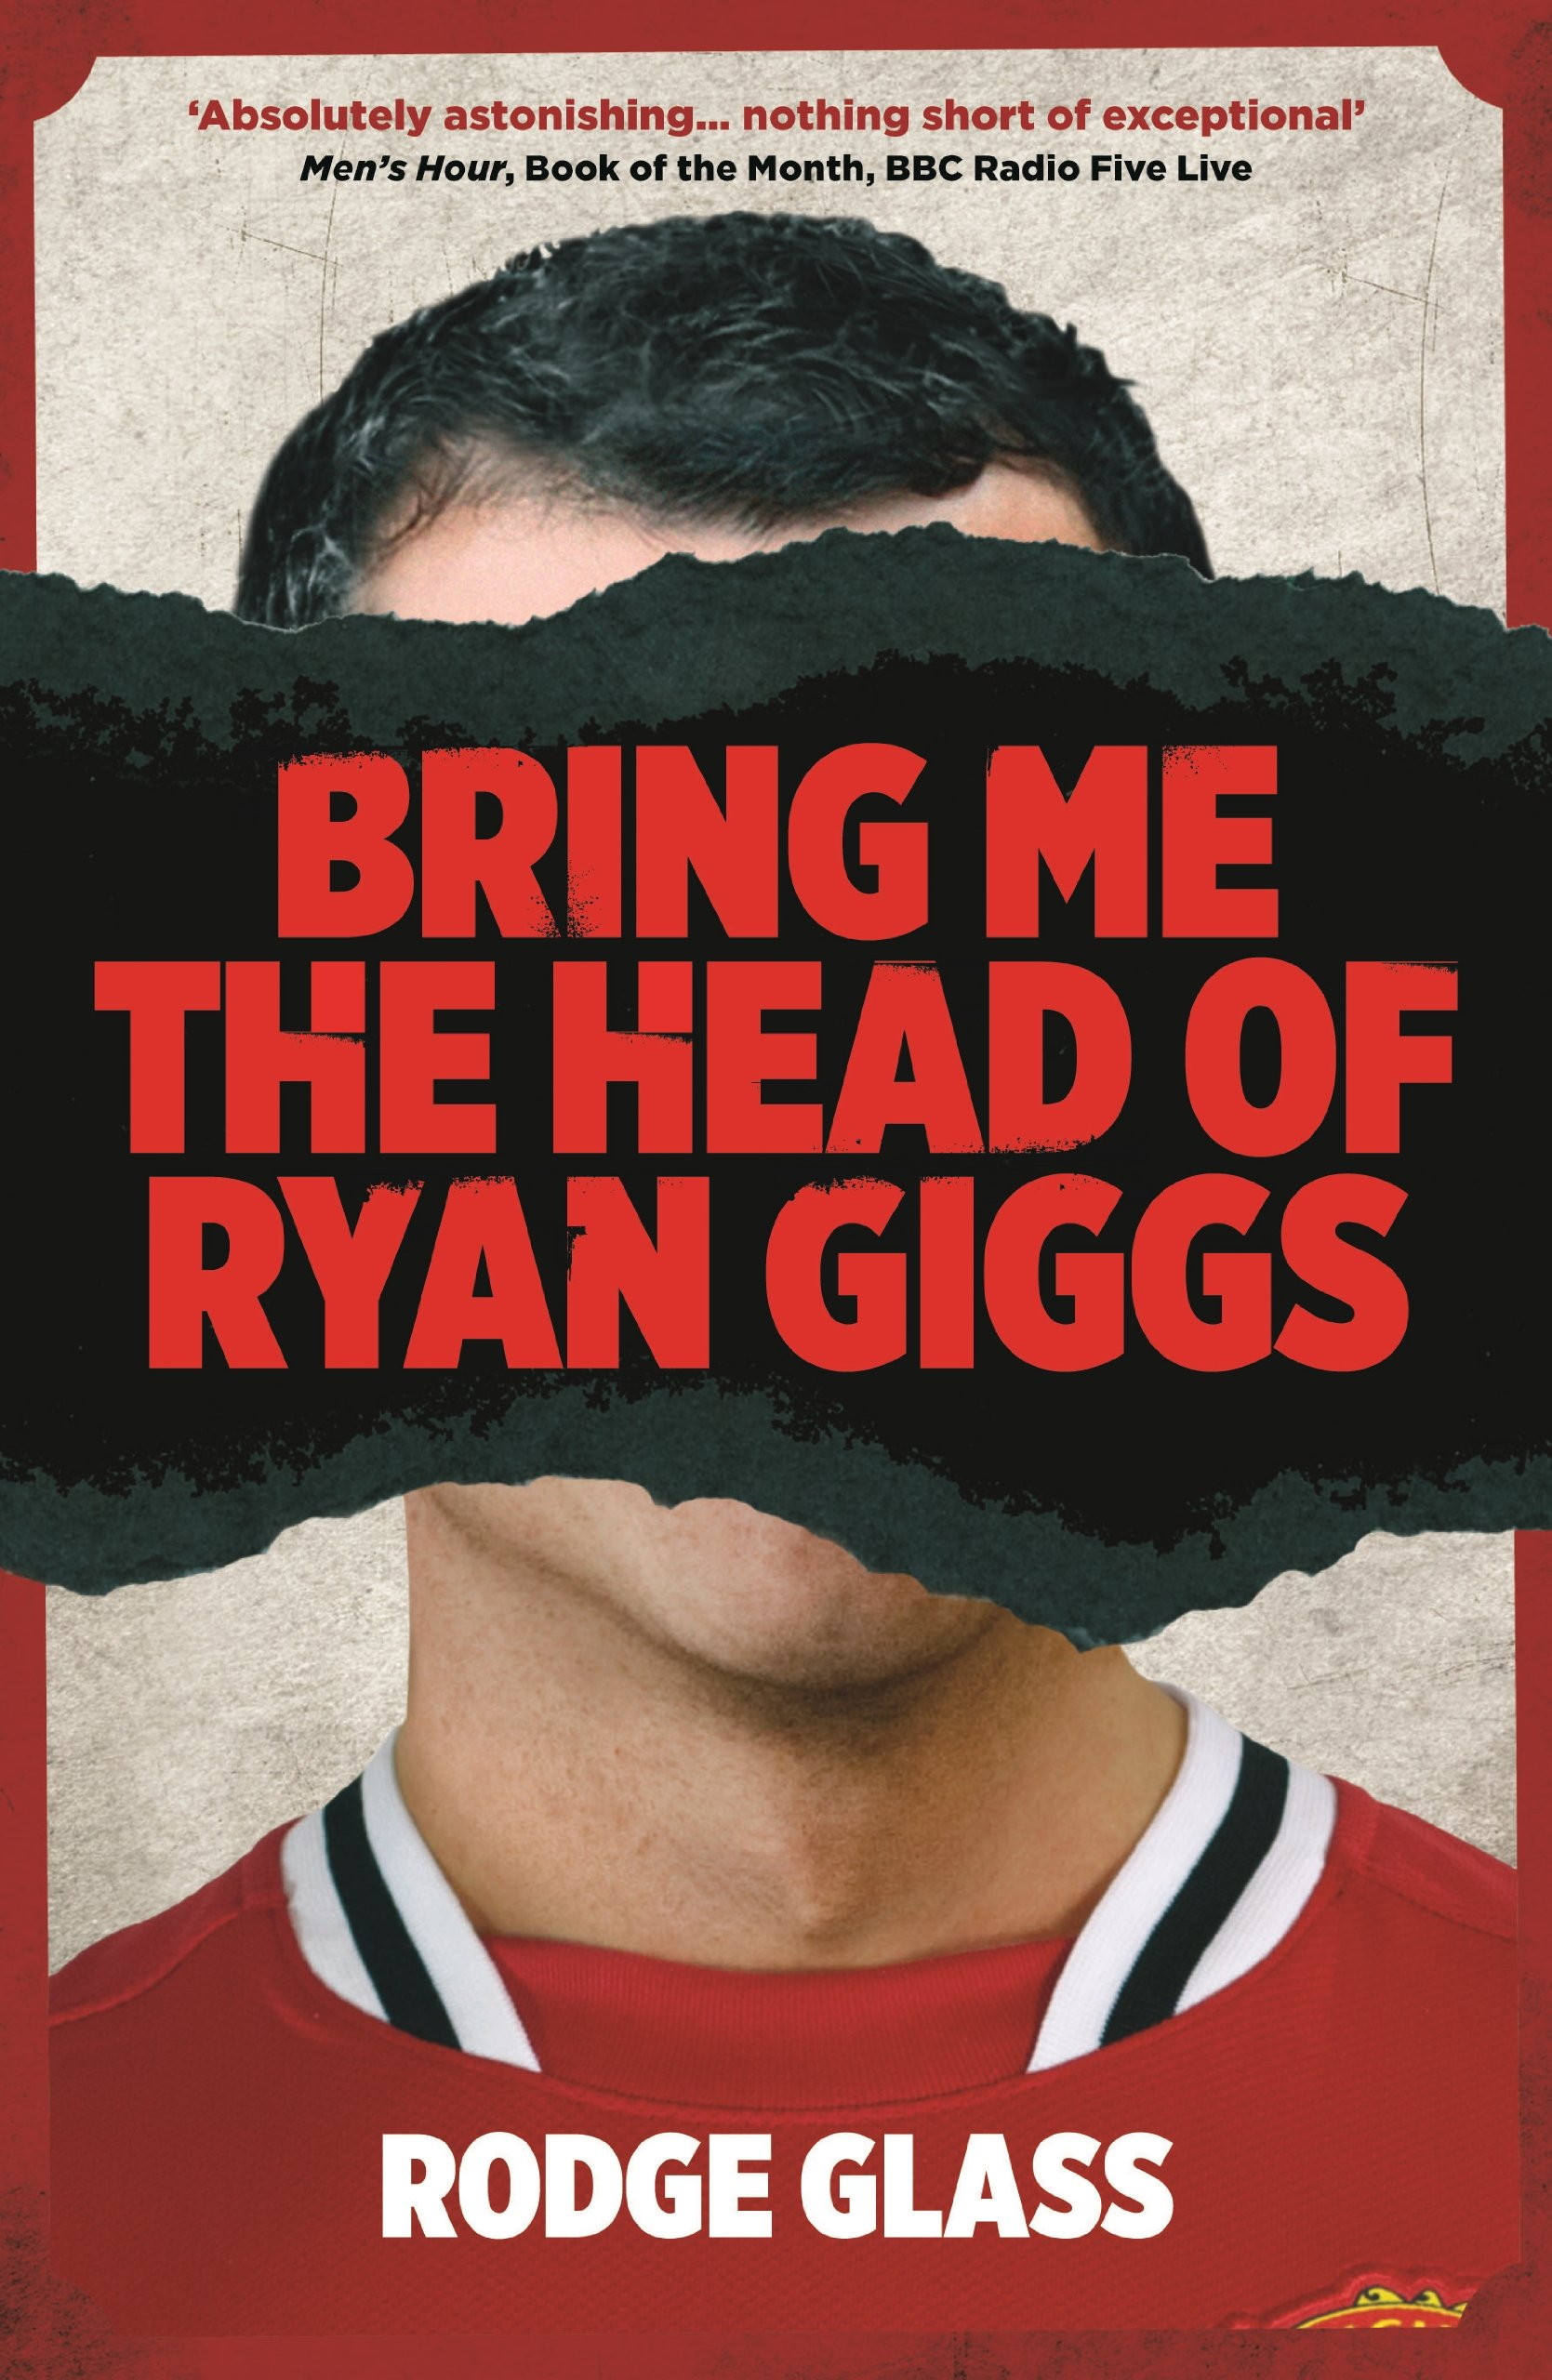 Image result for bring me the head of ryan giggs